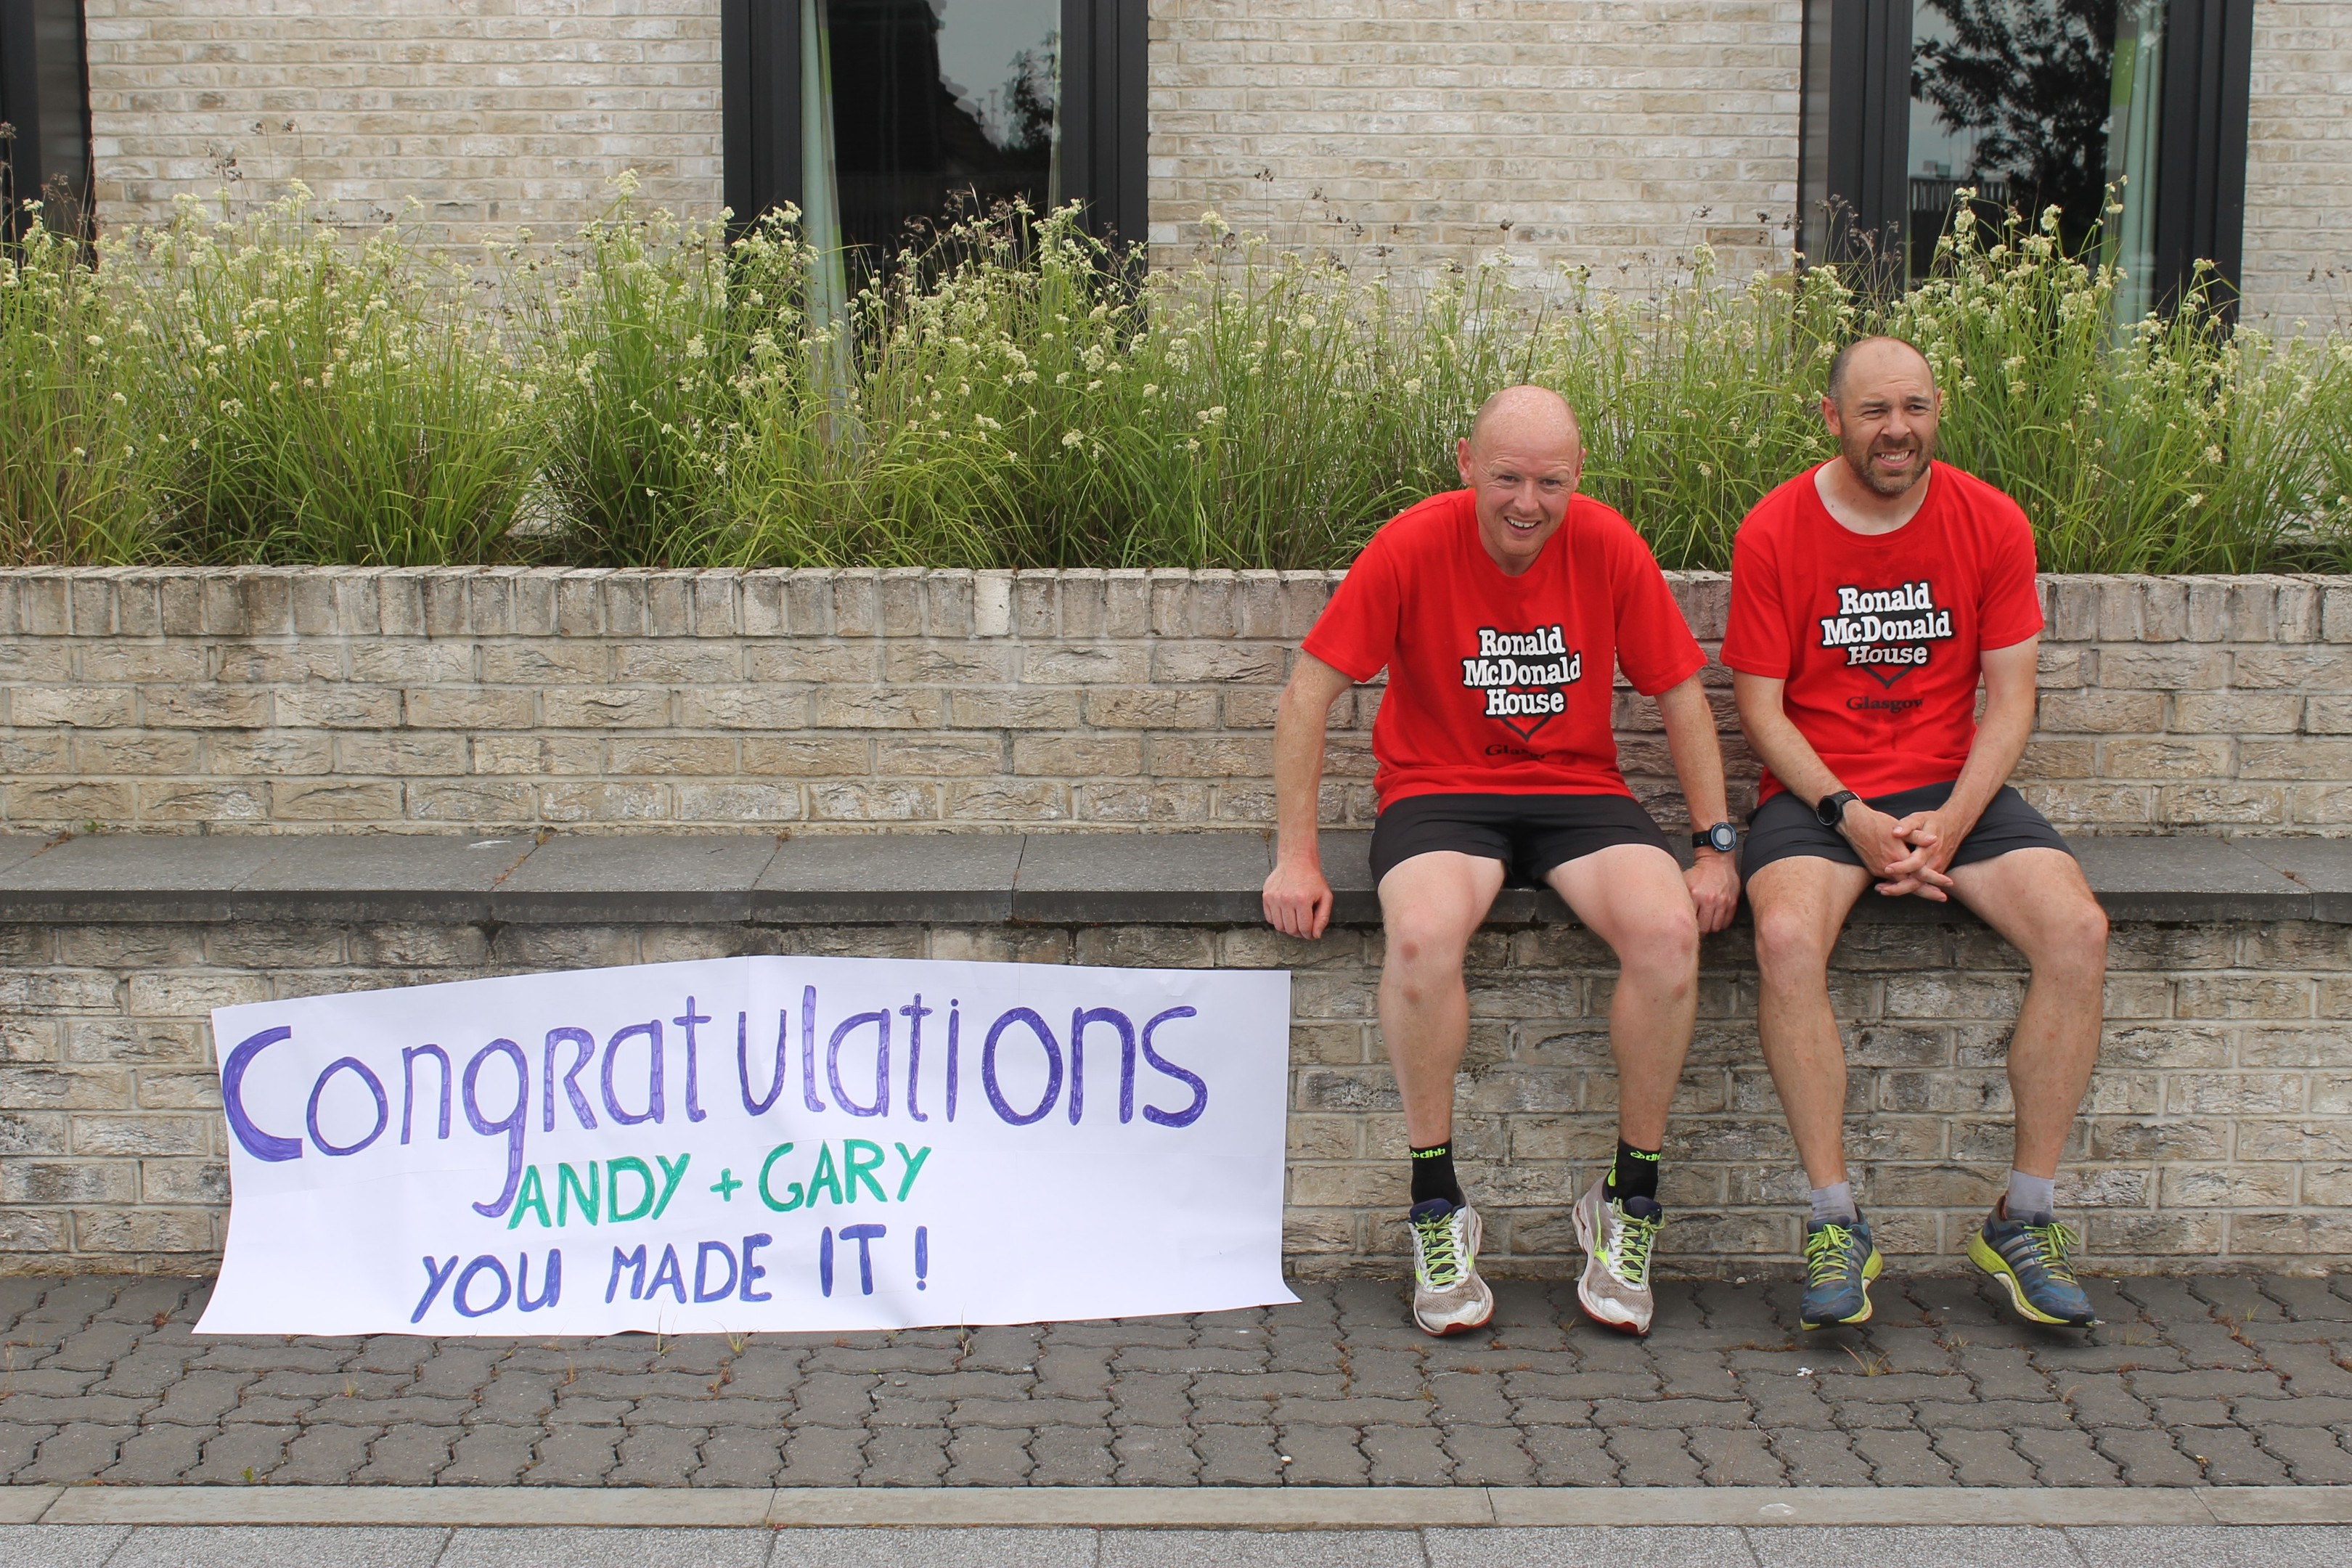 Cpl Andy Price and friend Gary Bell ran from Lossiemouth to Glasgow